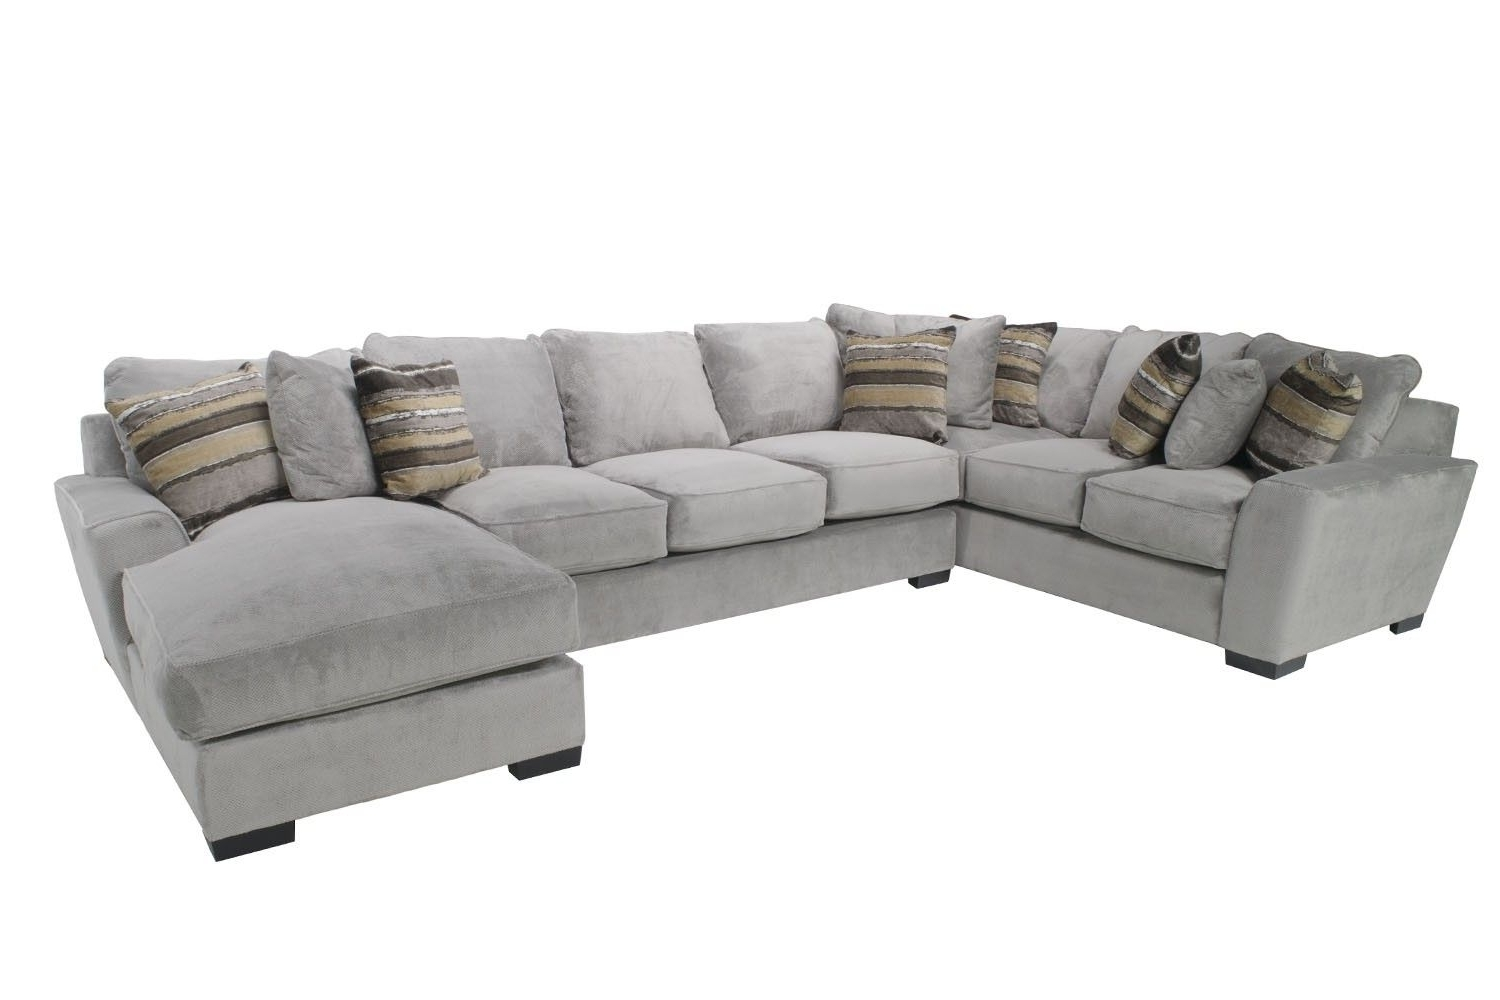 Oracle Right Facing Chaise Sectional Media Image (View 20 of 20)